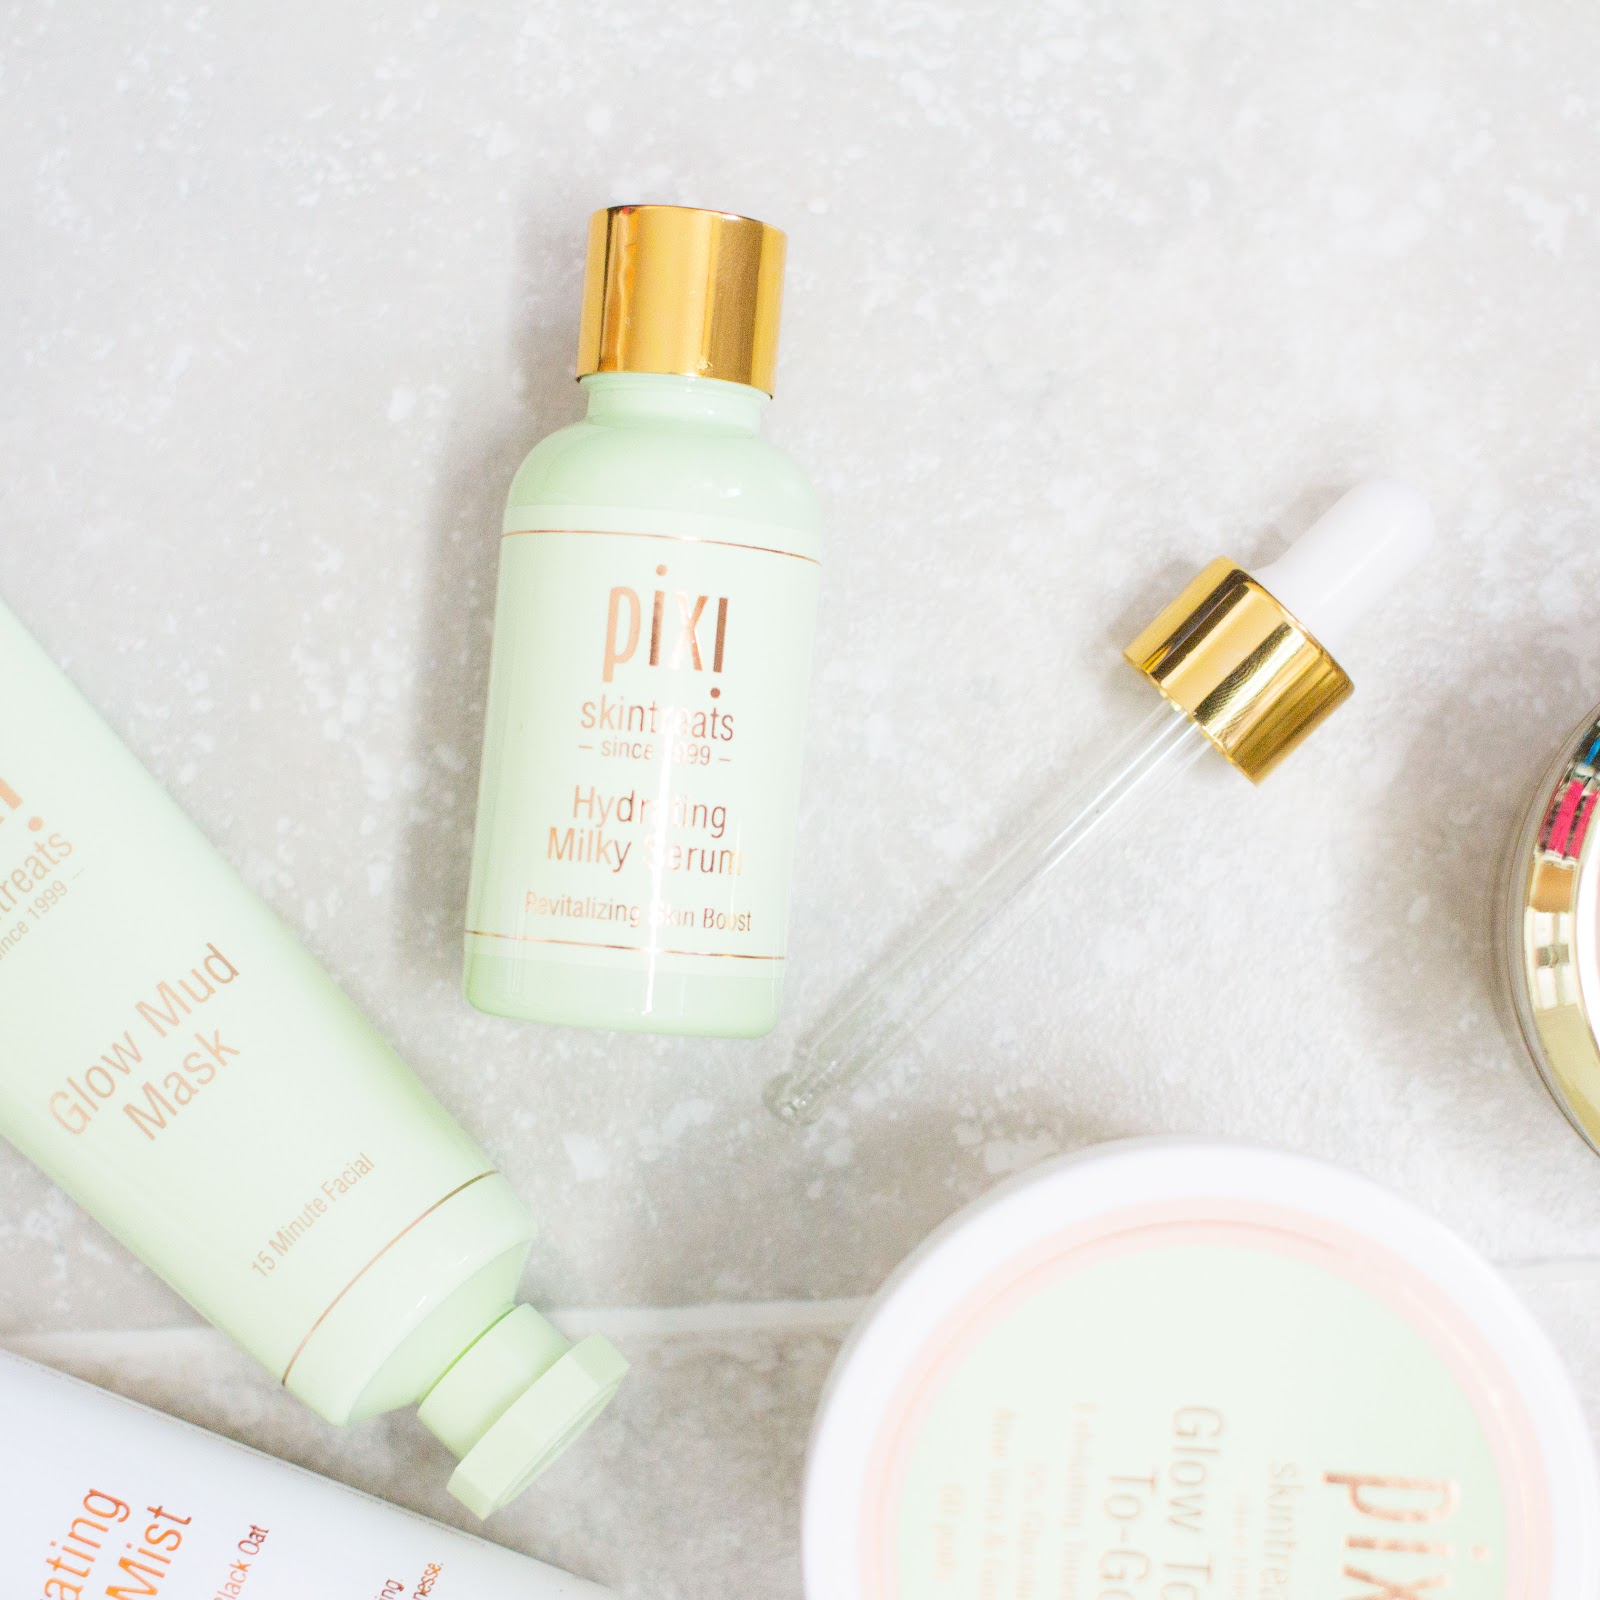 Pixi by Petra Skintreats Review